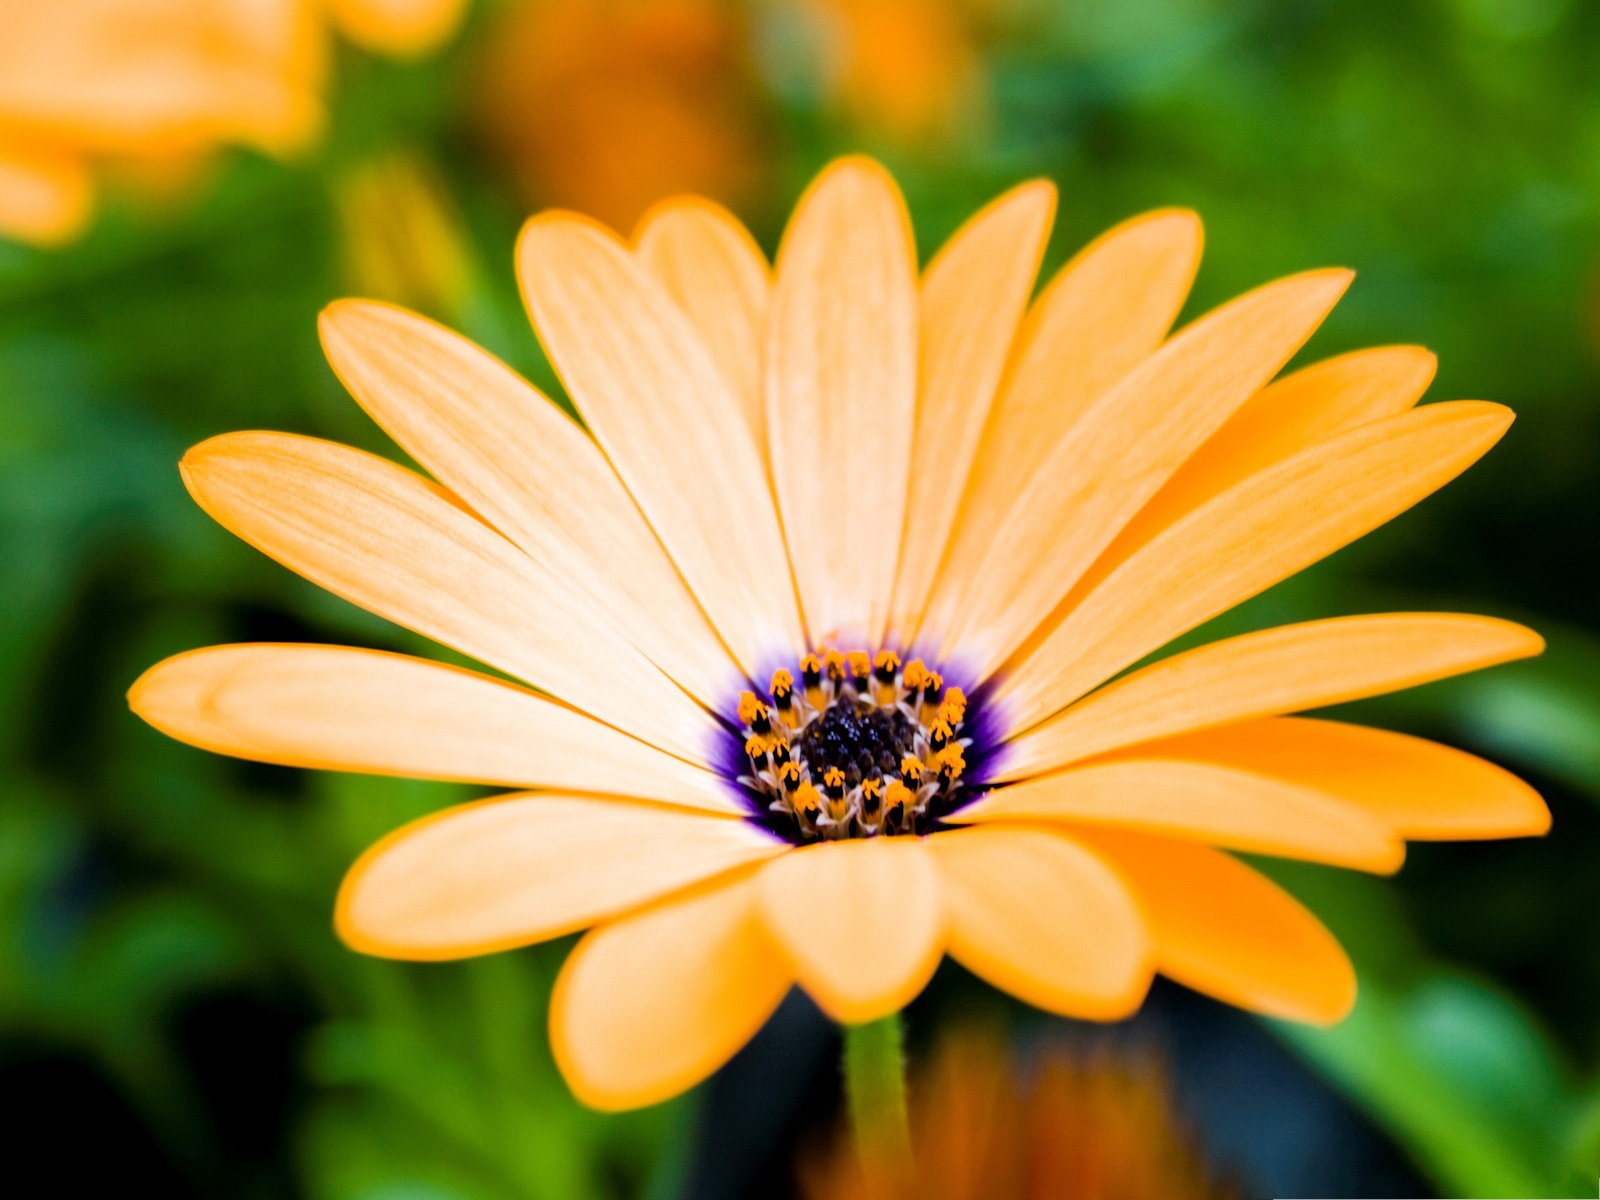 click to free download the wallpaper--Orange Cape Daisy Flower, Long and Wide Petals, Clean Fresh Scenery 1600X1200 free wallpaper download